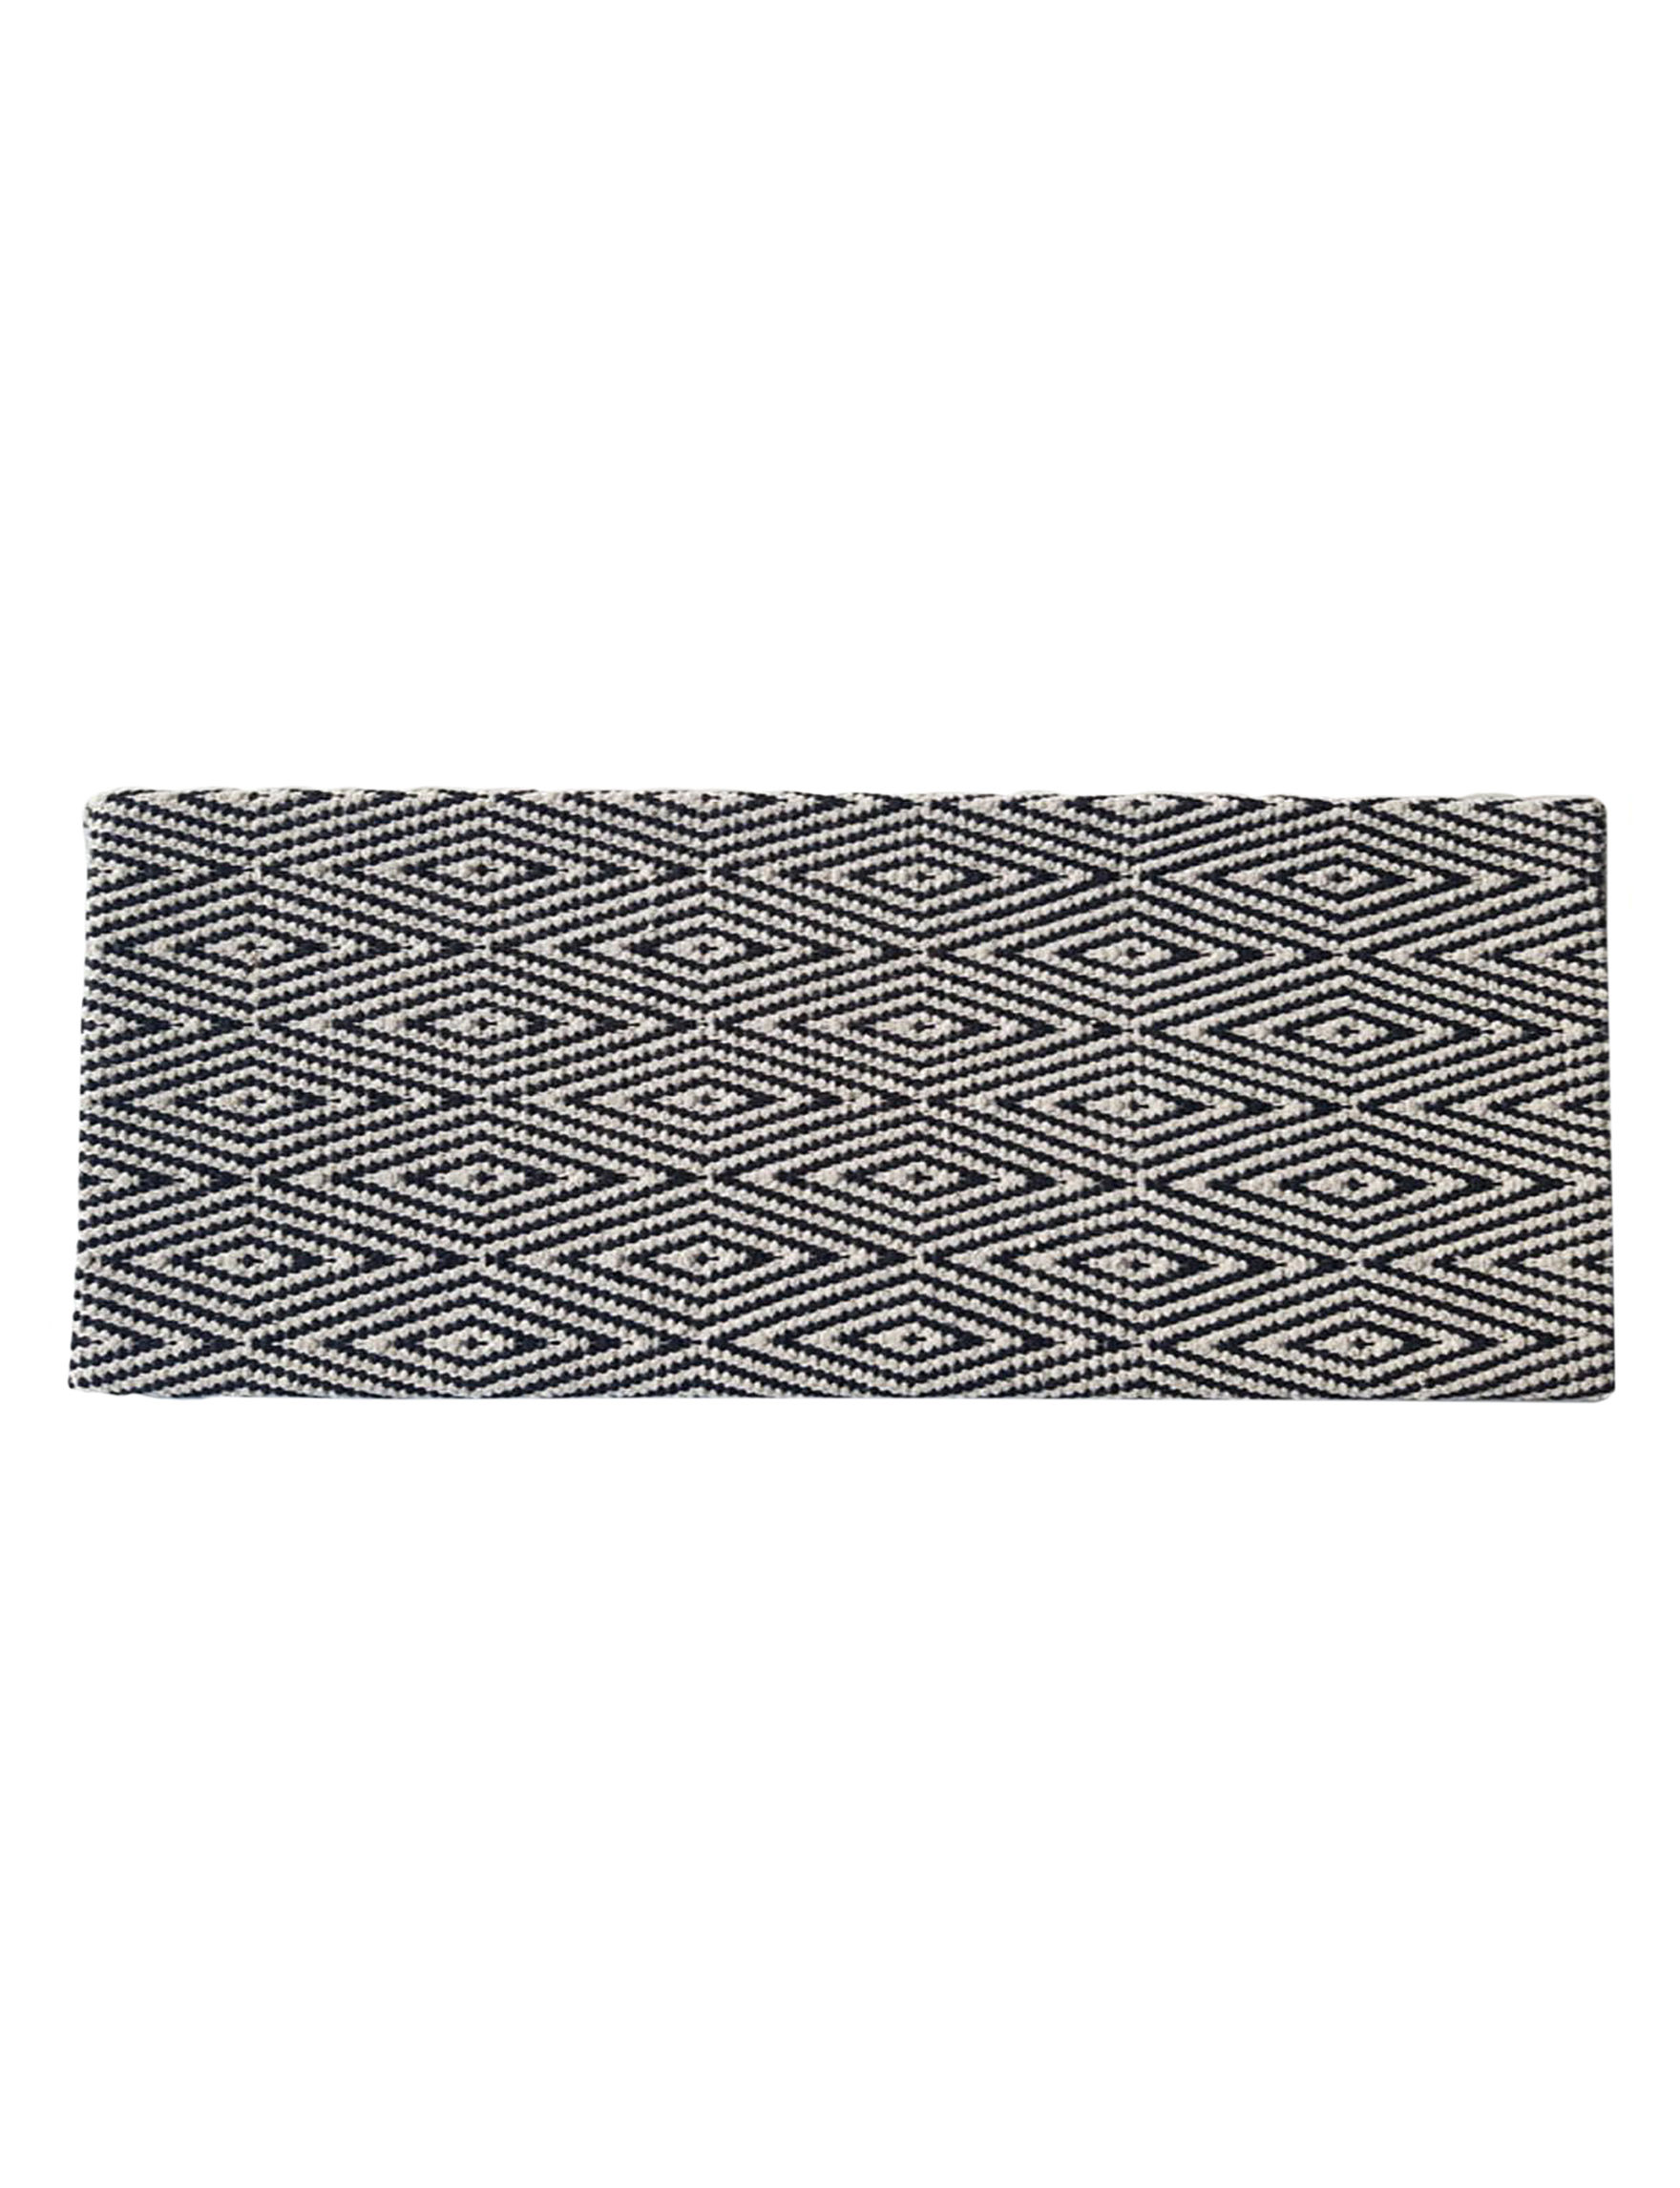 Direct Home Textiles Black / Beige Kitchen Rugs Rugs